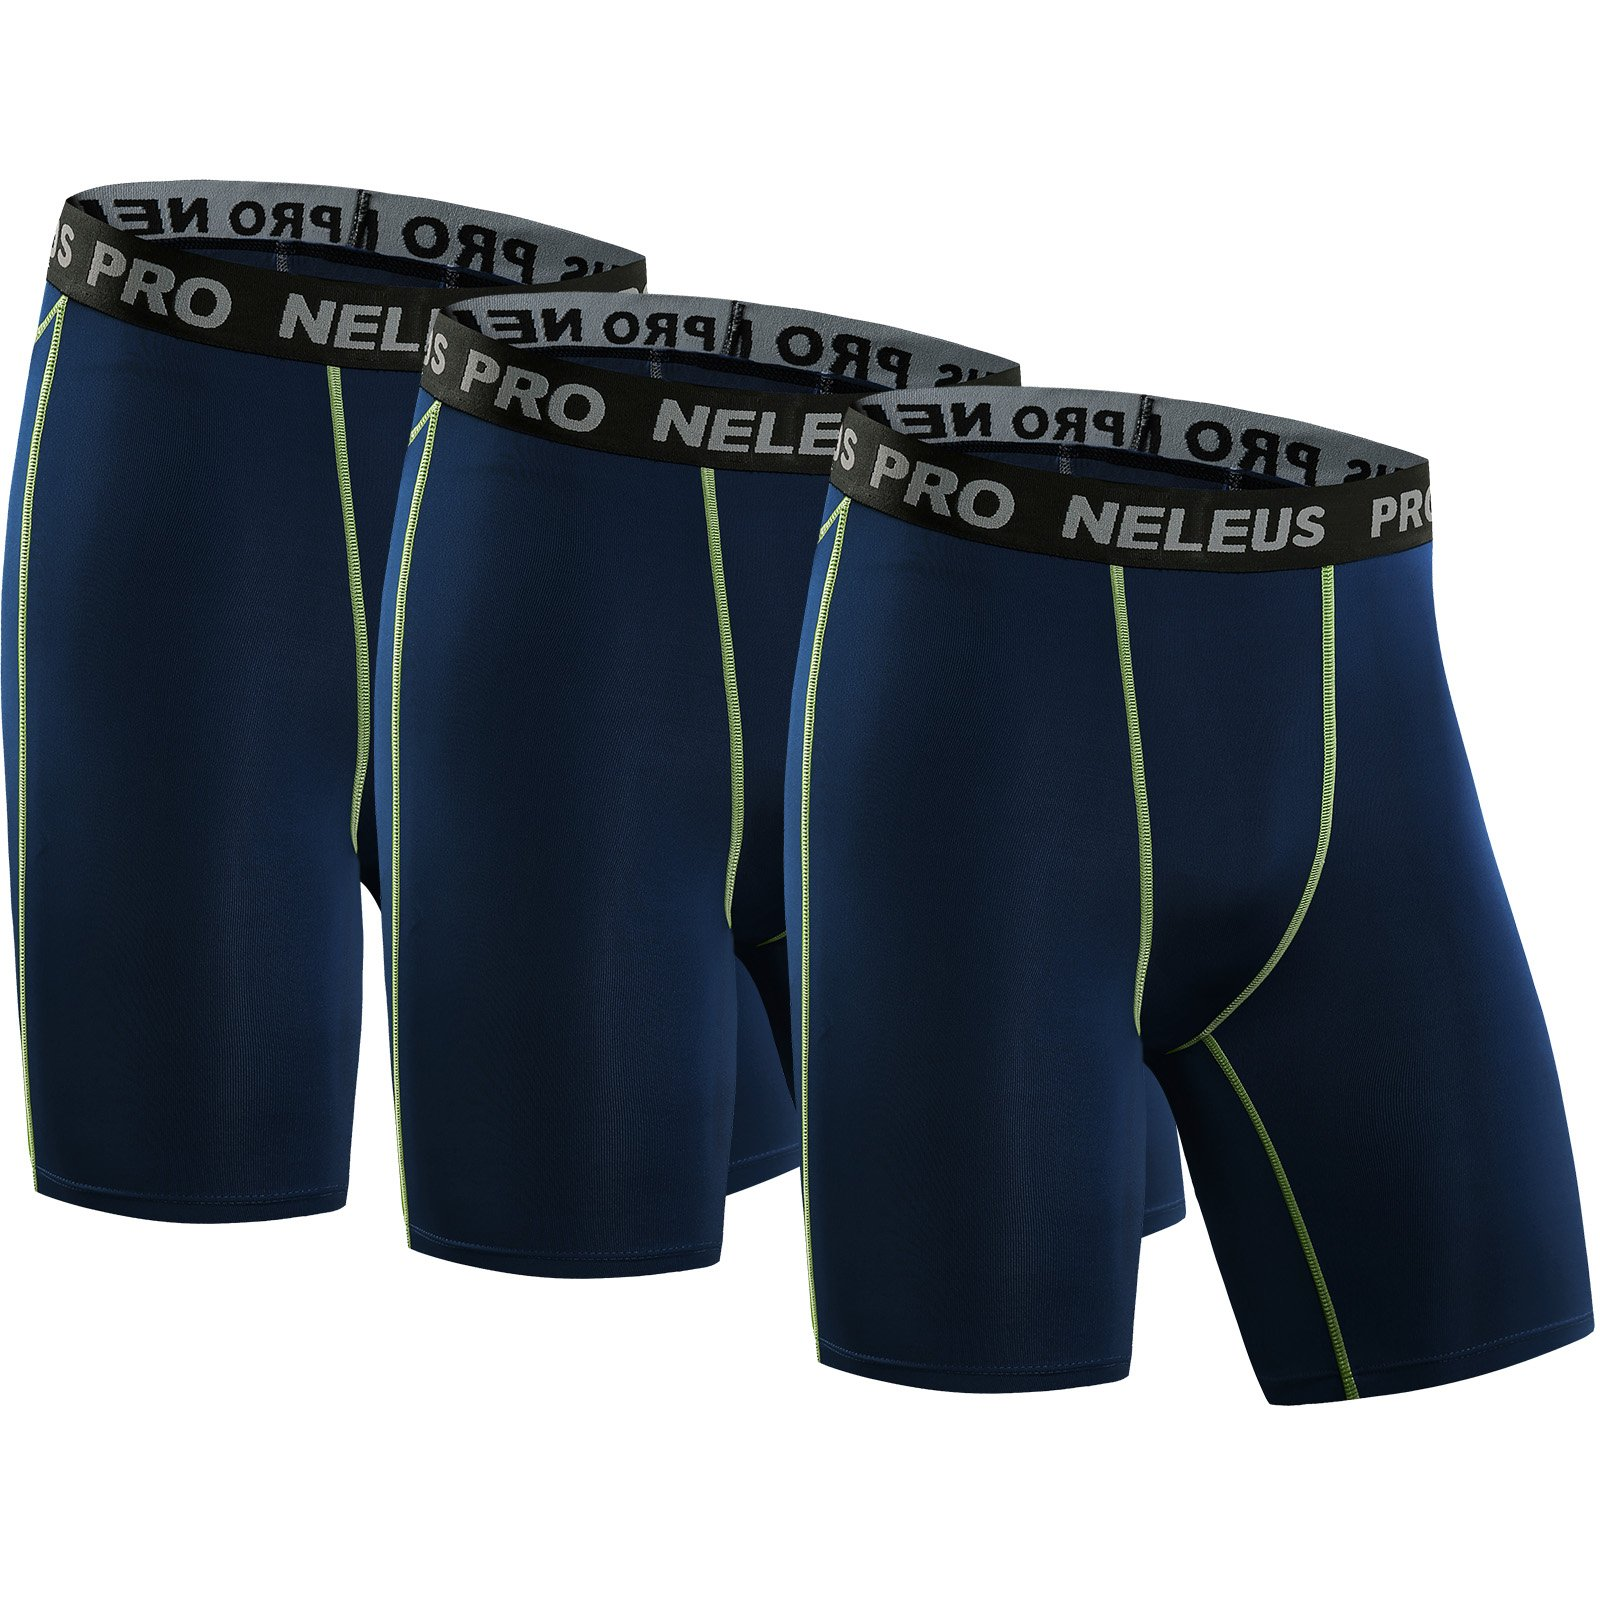 Neleus Men's 3 Pack Compression Short,047,Navy Blue,US M,EU L by Neleus